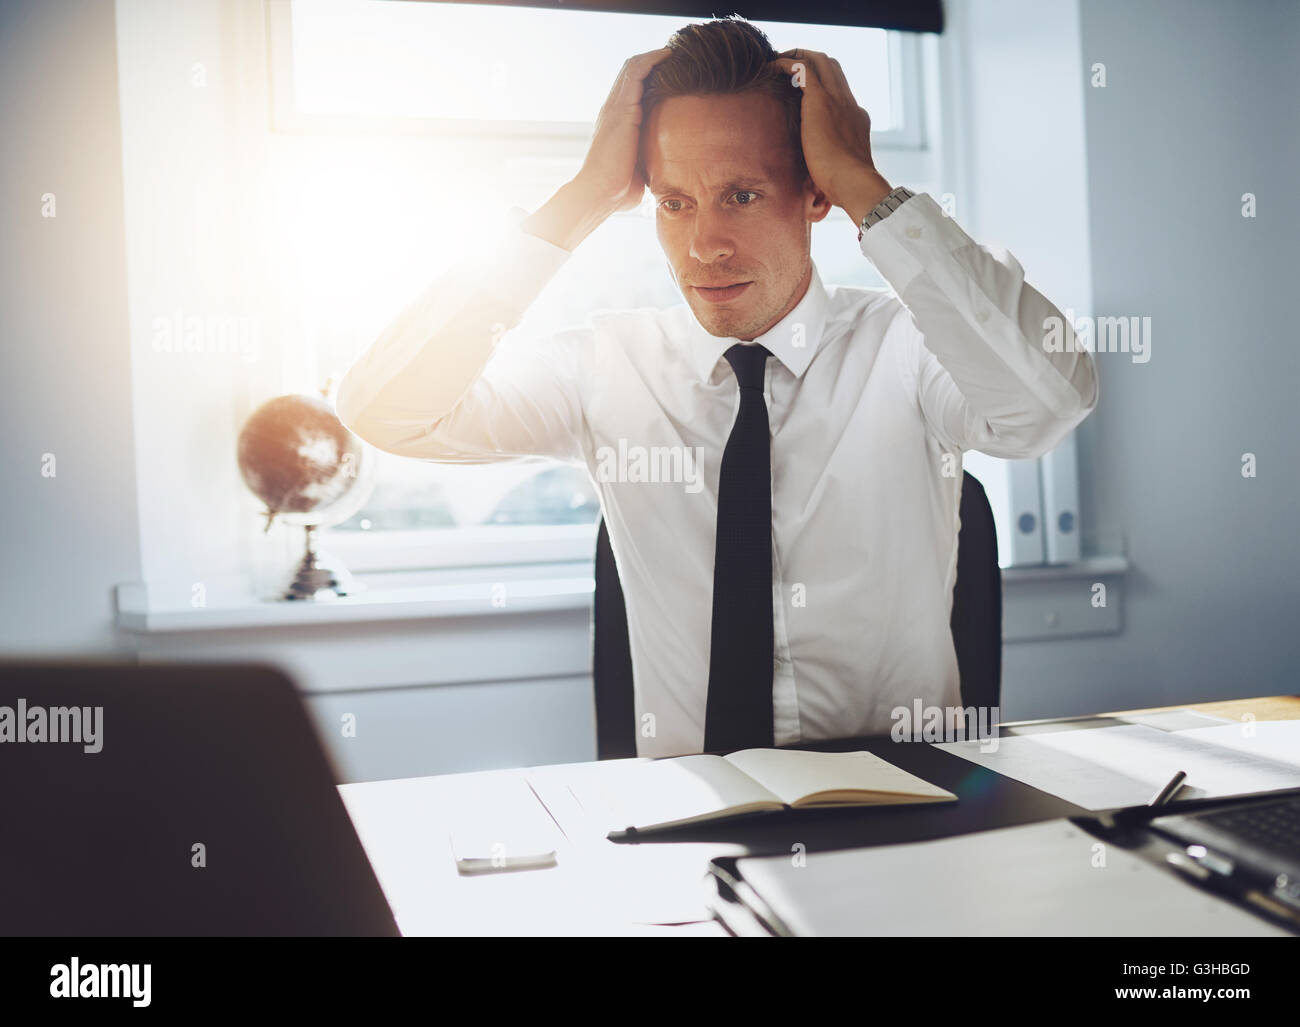 Frustrated business man looking at laptop holding his hands to his head in frustration - Stock Image